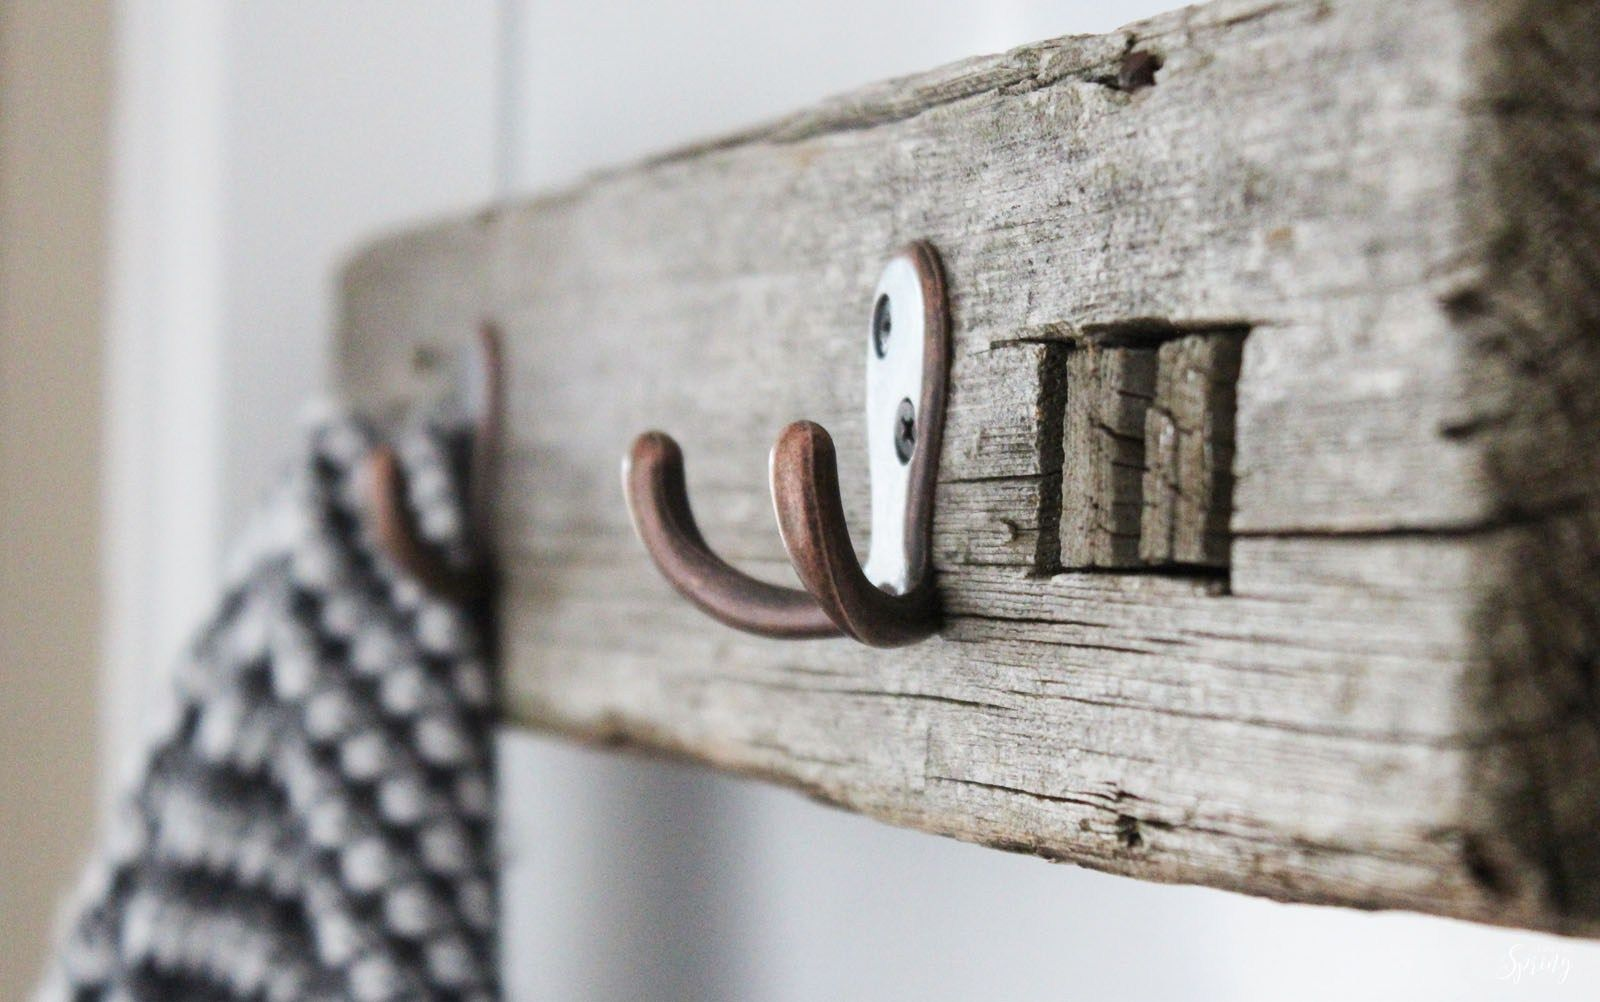 A simple DIY upcycle project using an old plank of wood to create a rustic farmhouse style coat rack.